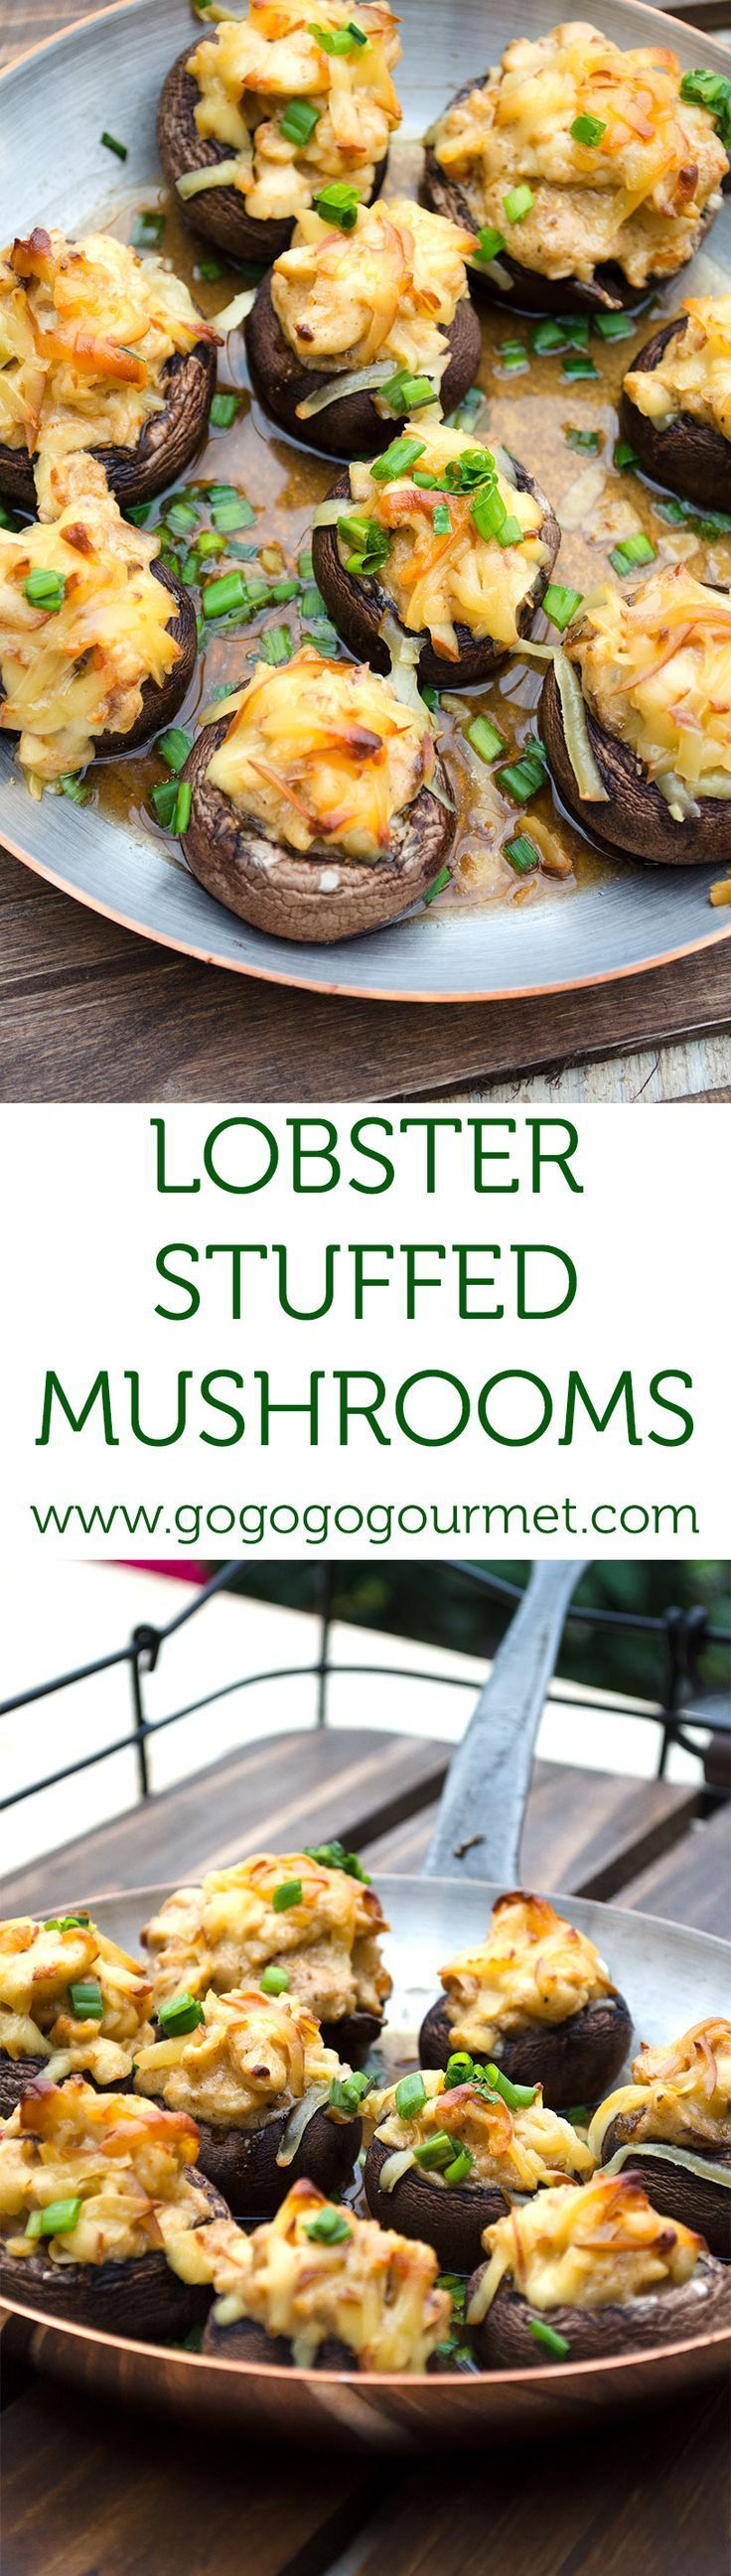 These stuffed mushrooms get an added touch of decadence and elegance from chunks of buttery lobster and smoked gouda. | Go Go Go Gourmet /gogogogourmet/